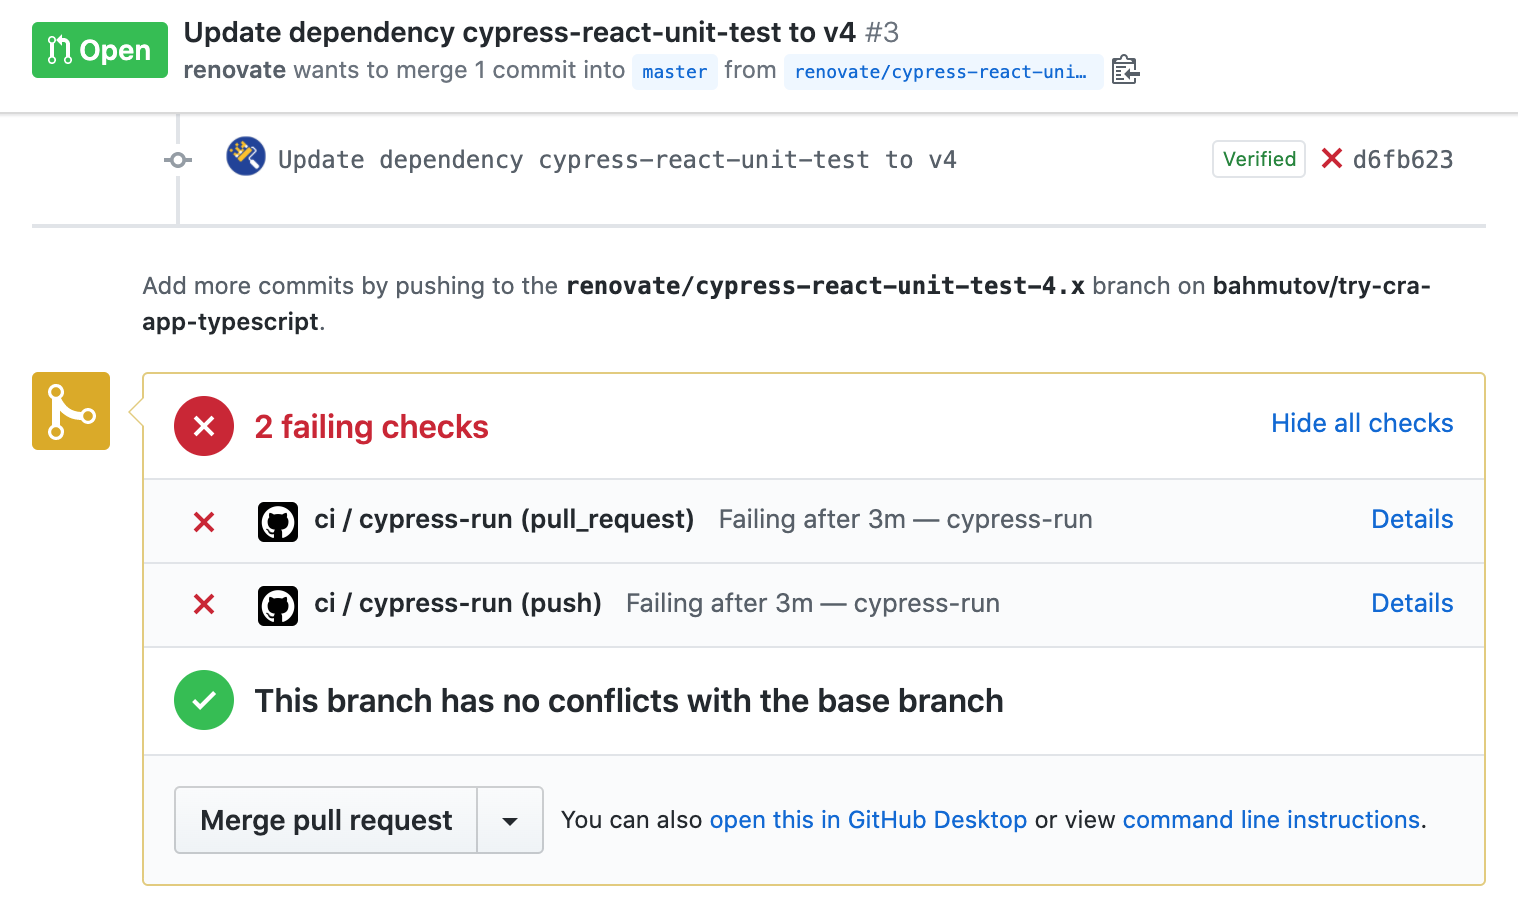 Failed pull request to update cypress-react-unit-test